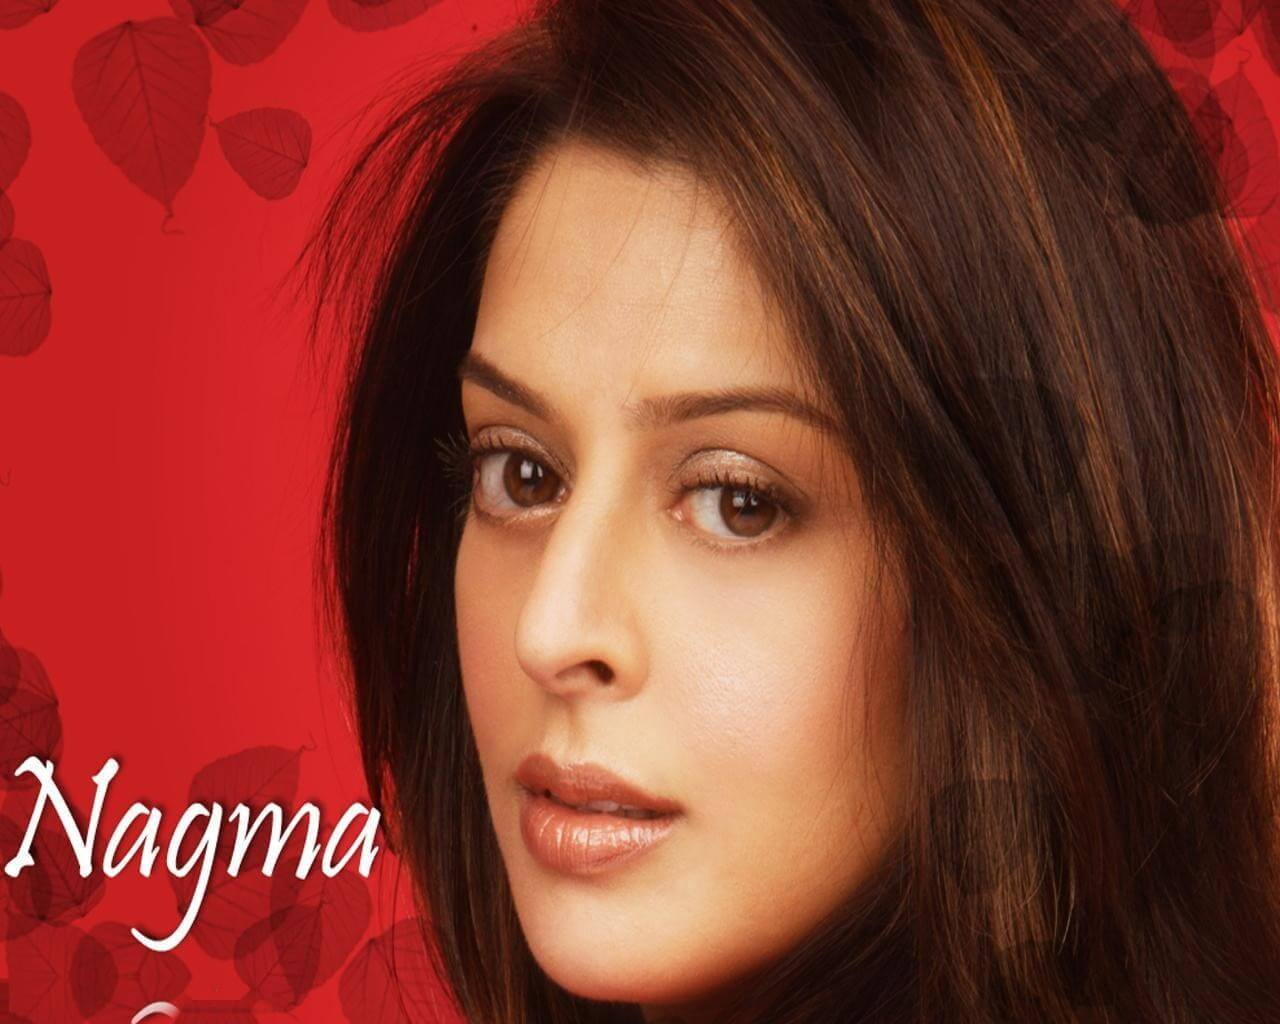 Nagma Age, Husband, Family, Sisters, Biography, Date Of Birth, Height, Politics, Net Worth, Images(photos), Education, Twitter, Wiki, Facebook, Imdb, Instagram (6) (1)